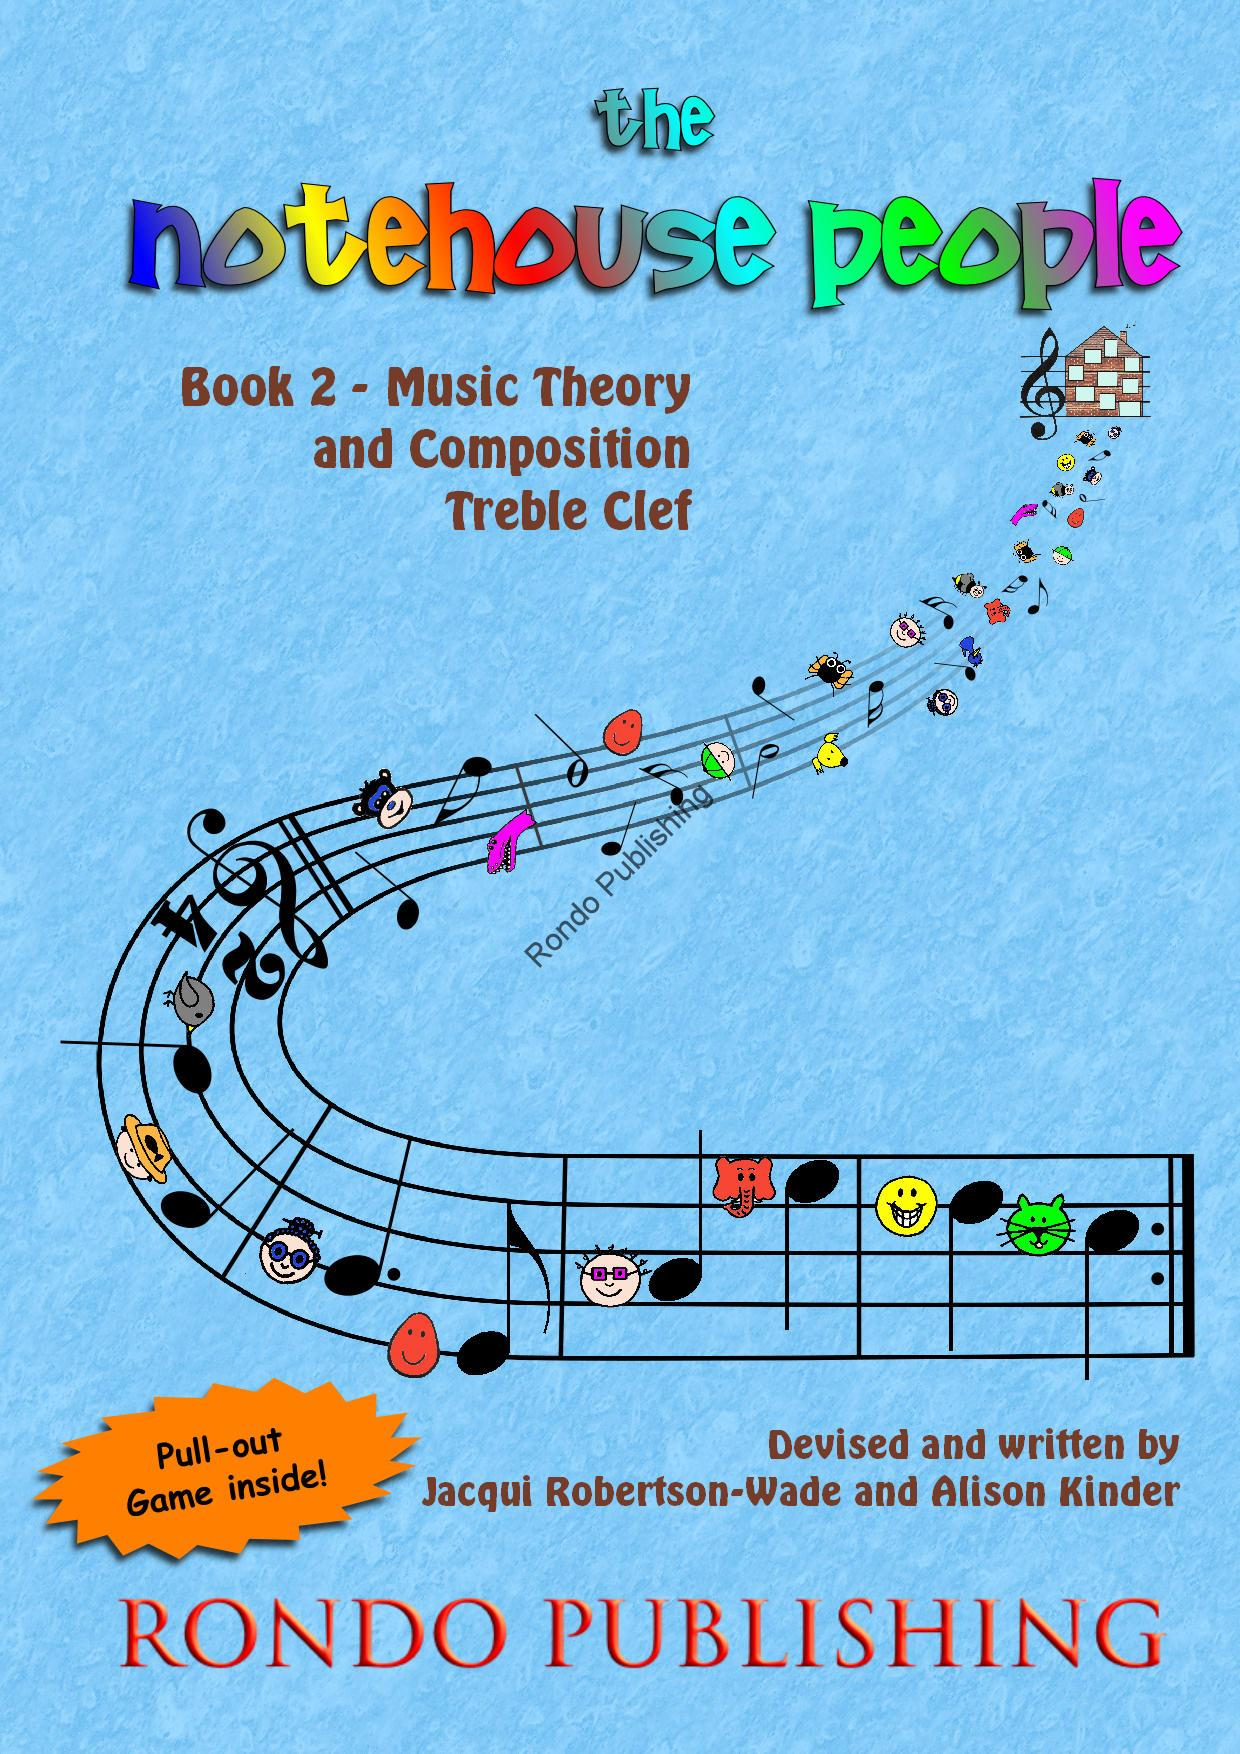 Music Theory The Notehouse People